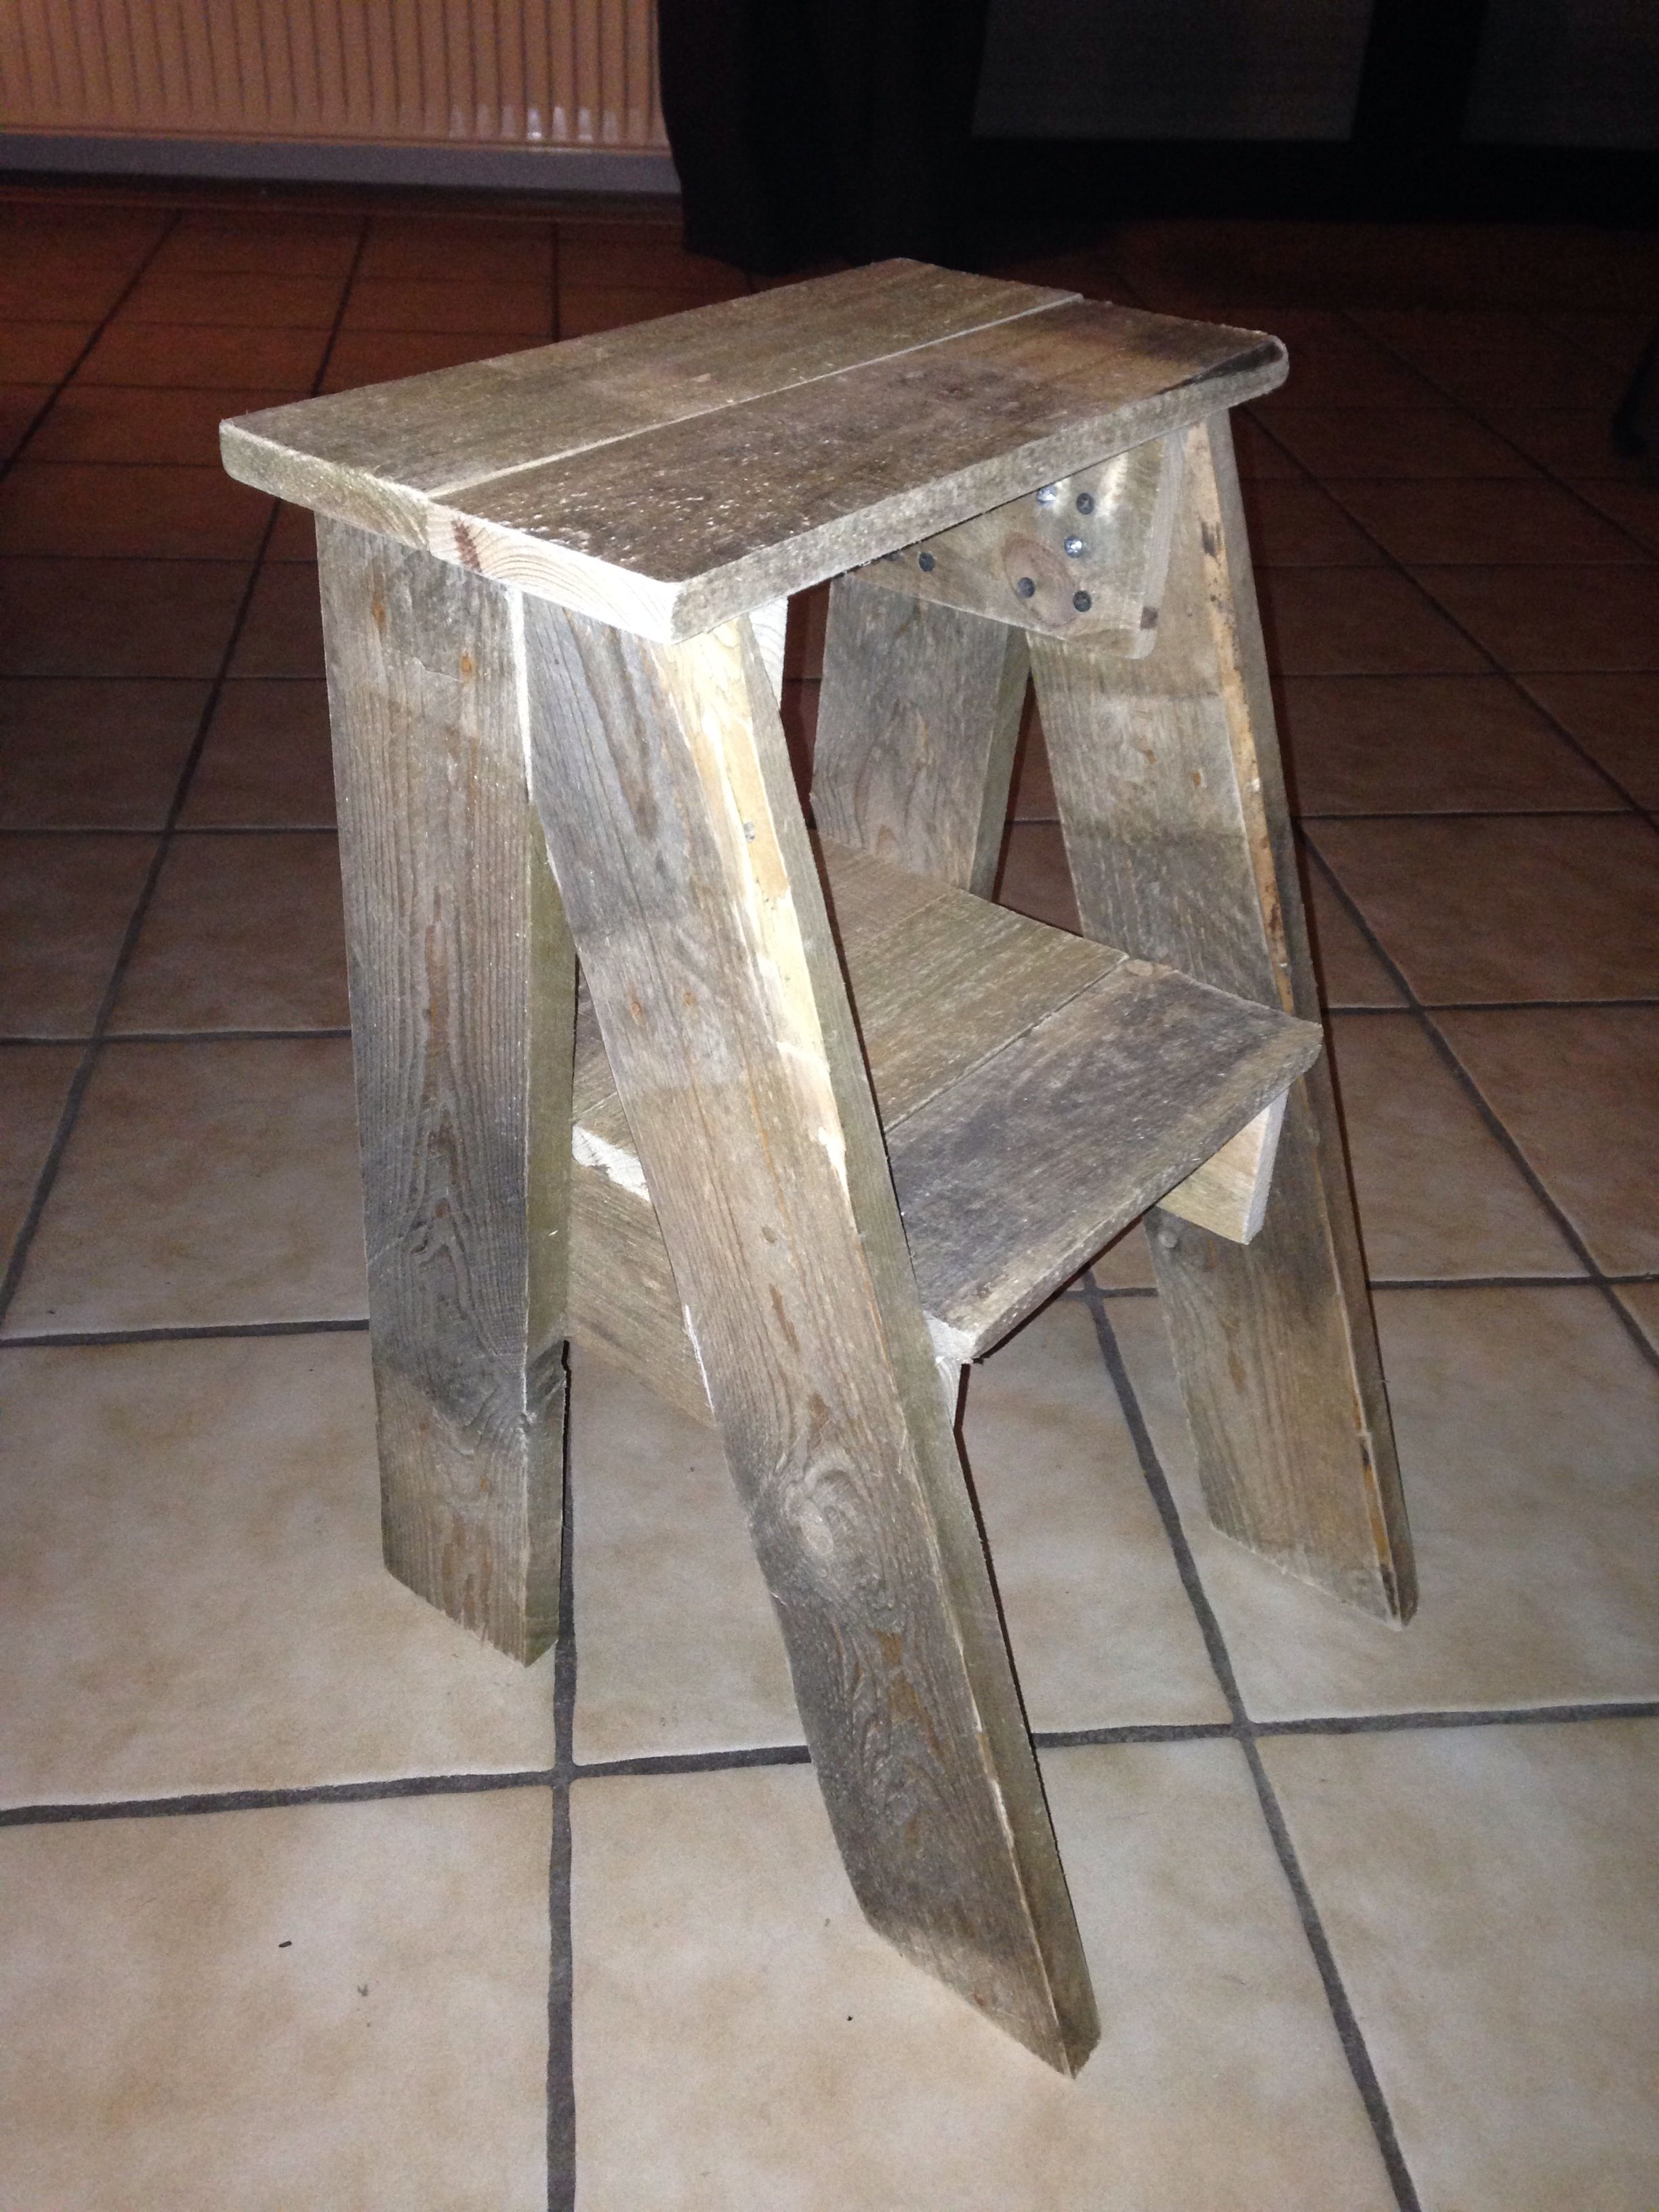 Wooden Step Stool Bedside: Step Stool Bedside Table From Pallet Wood. Basically, Ana